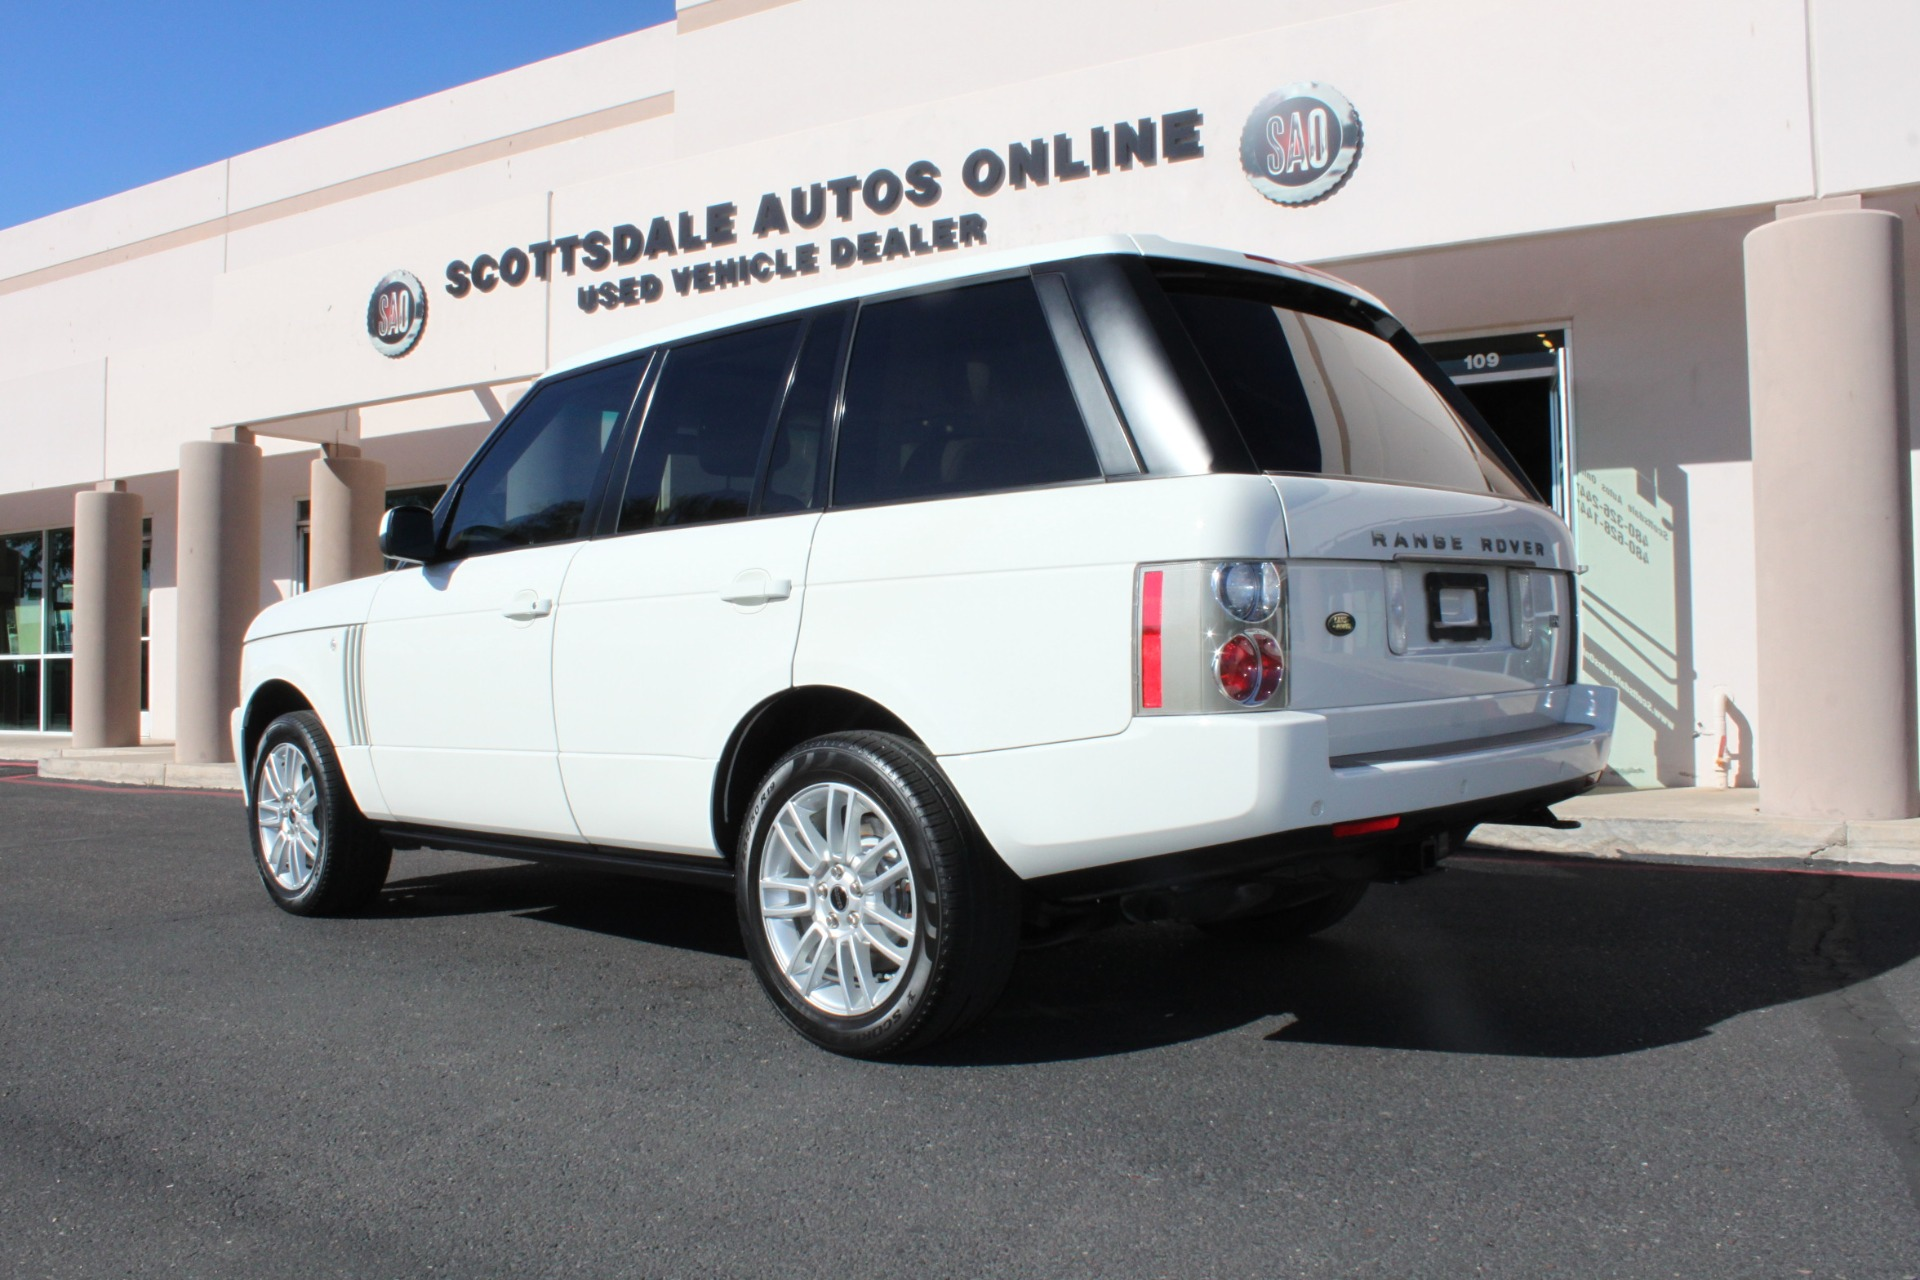 Used-2007-Land-Rover-Range-Rover-HSE-LS400